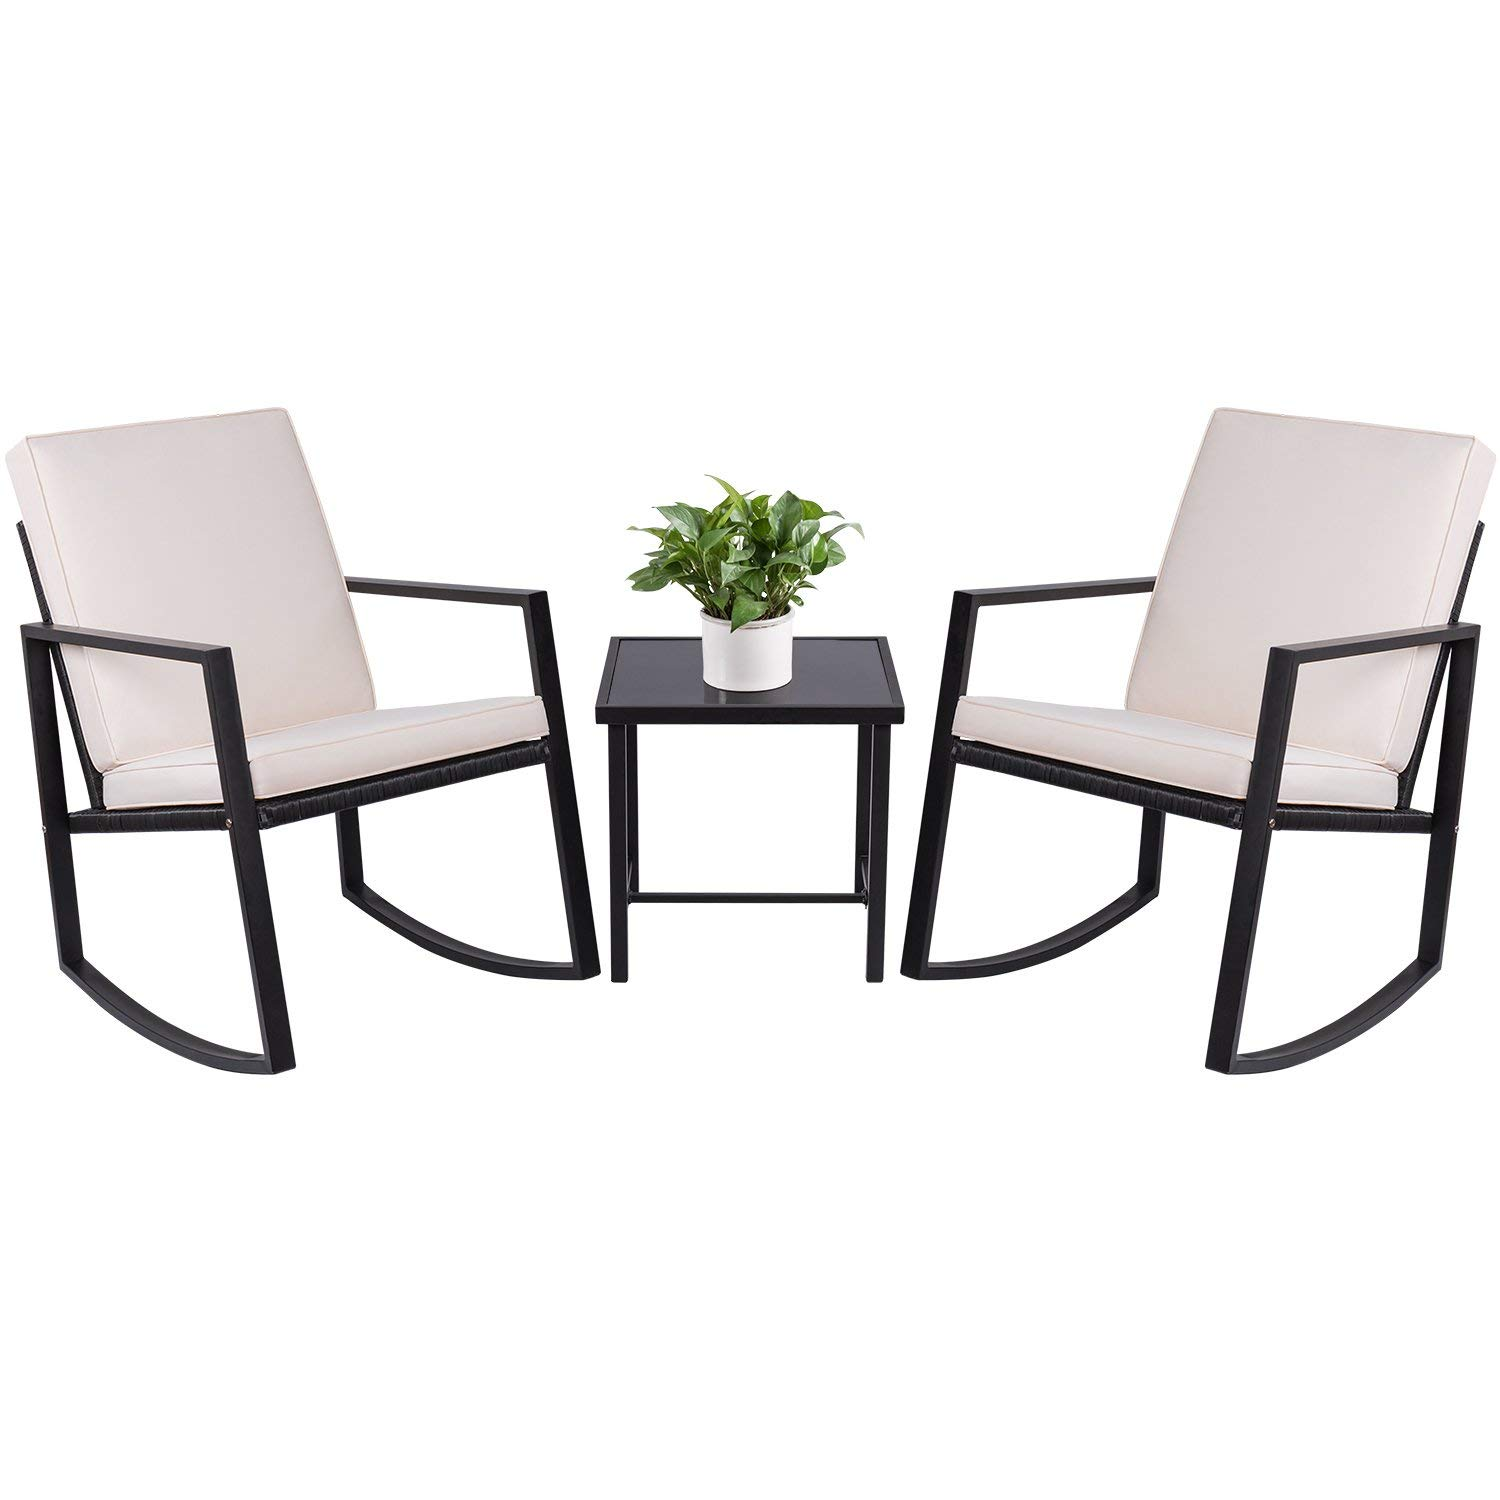 Devoko 3-Piece Rocking Bistro Sets Outdoor Patio Furniture Sets Clearance Wicker Porch Furniture with Glass Coffee Table (Black)